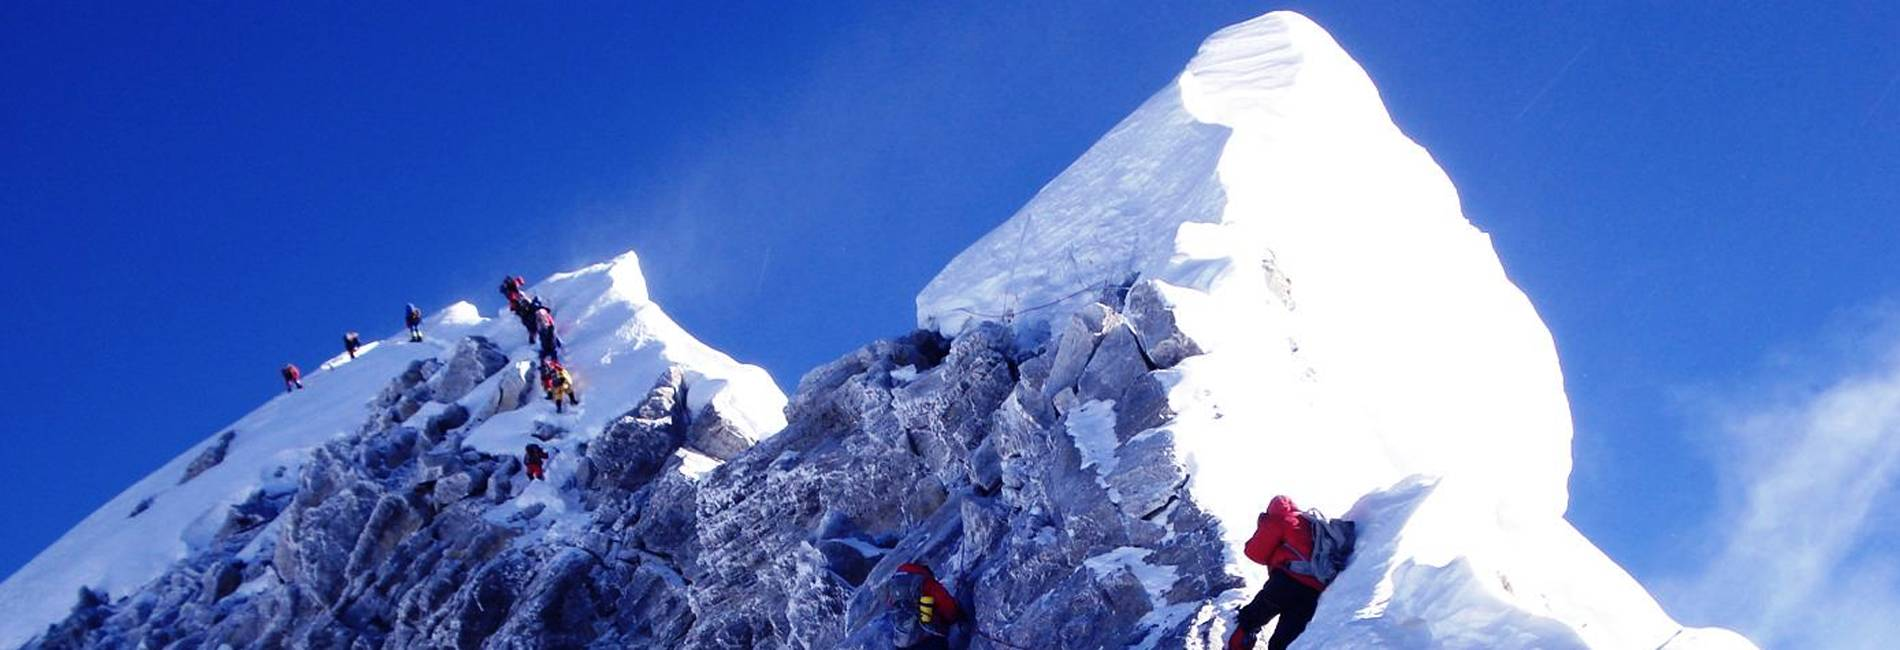 EVEREST EXPEDITION (SOUTH)